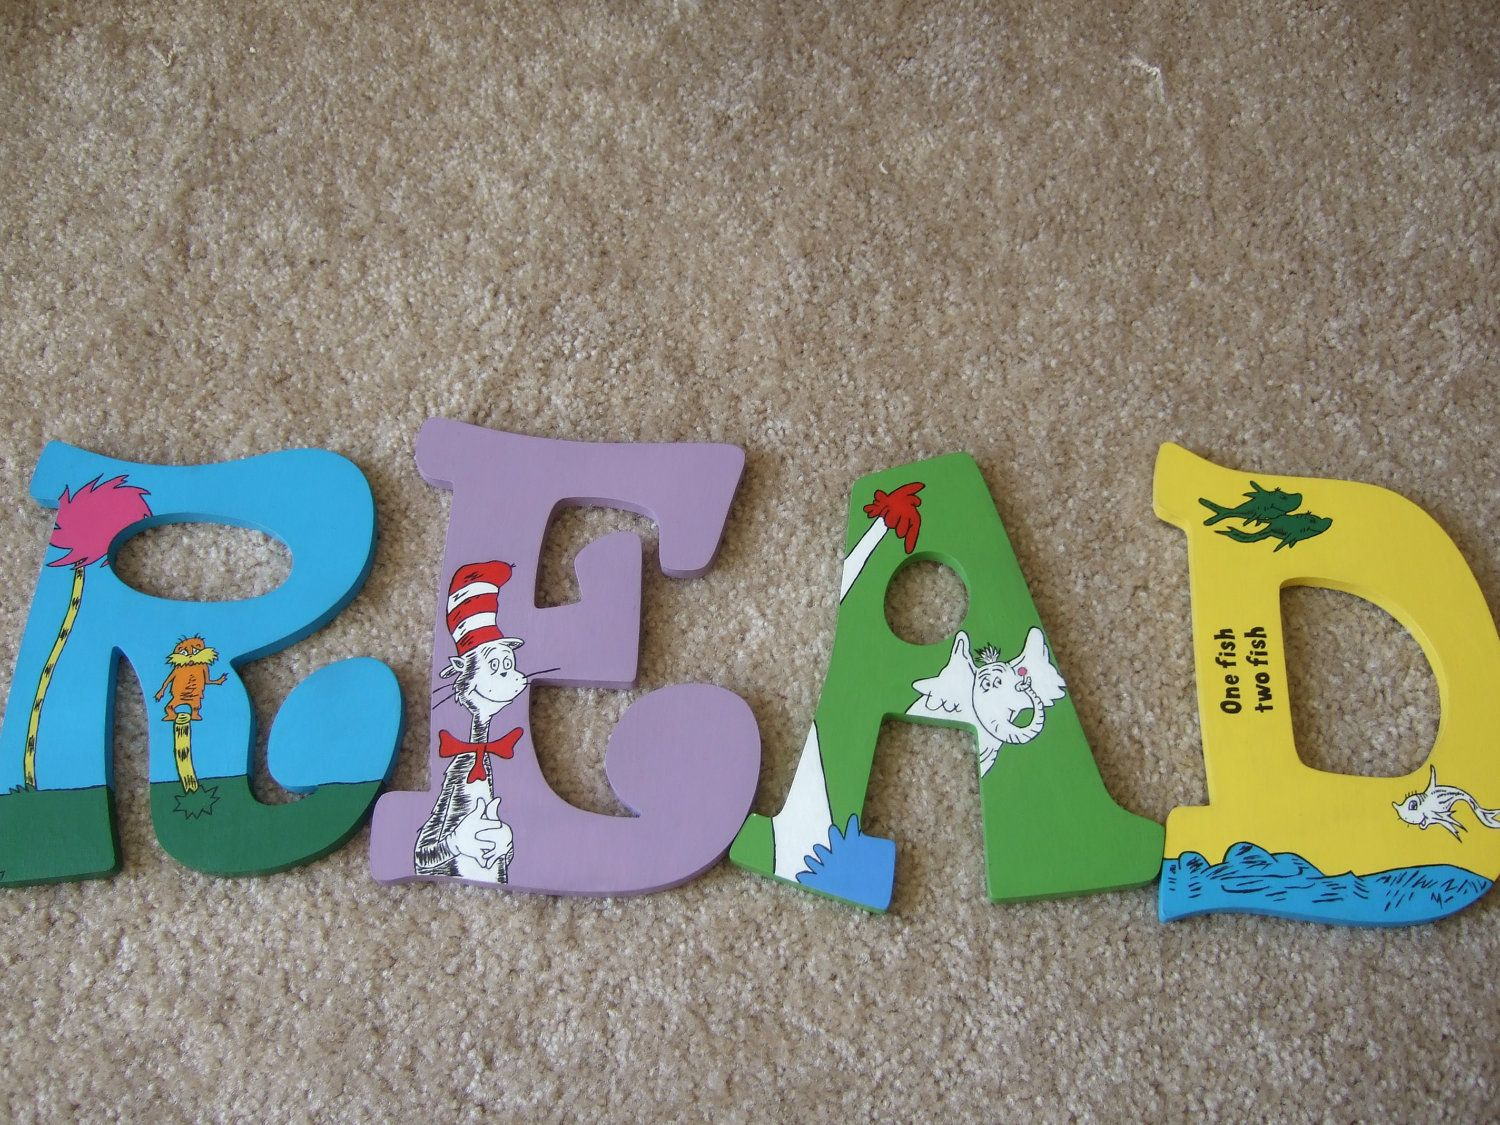 Dr. Seuss Wooden Letters - Children's Decor for Play Room or Nursery